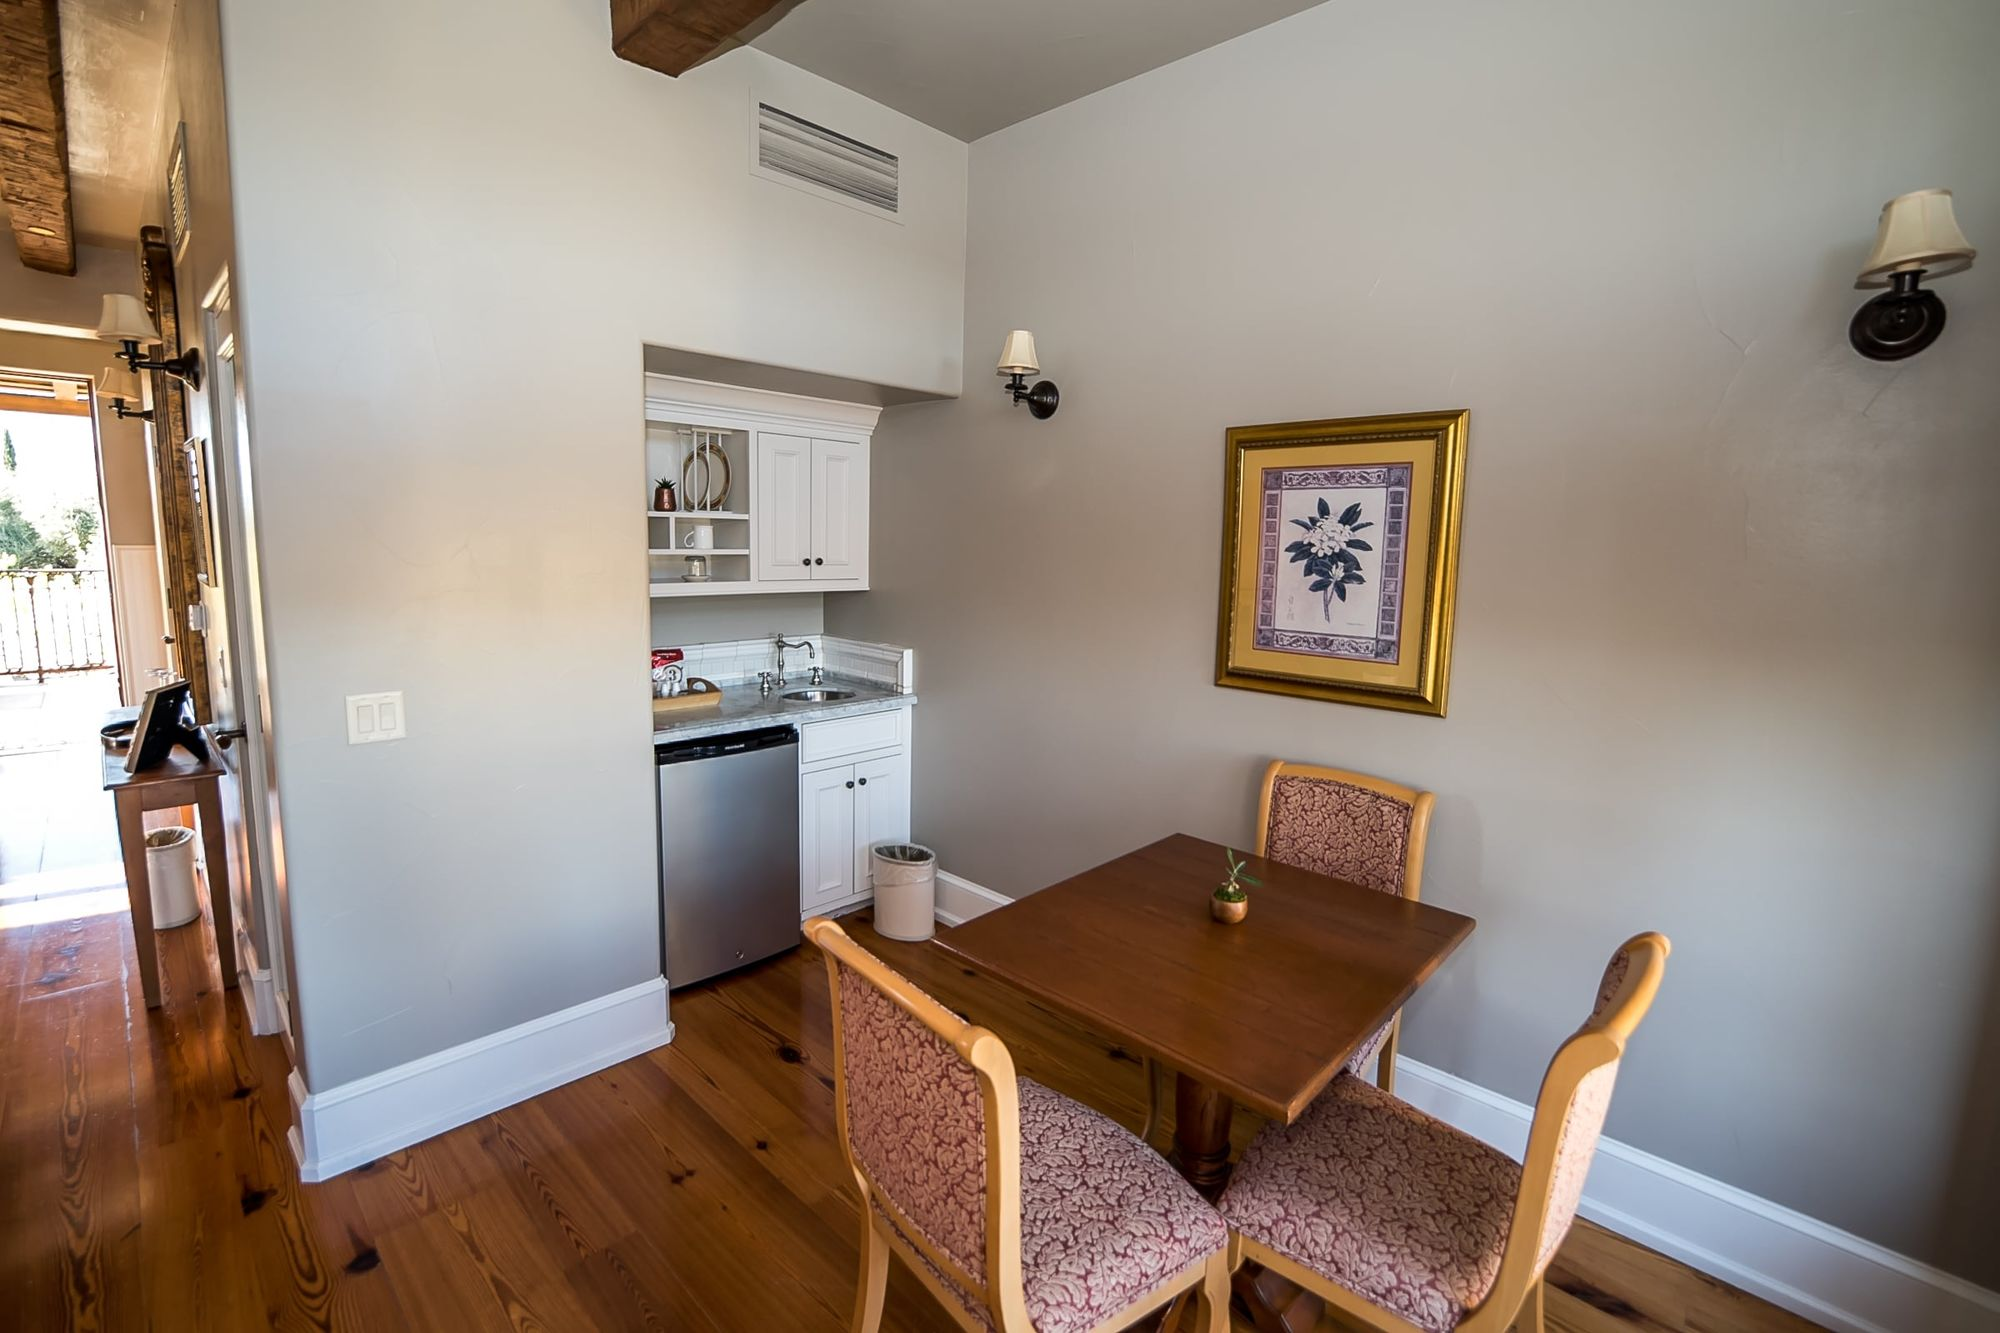 Small wet bar with sink fridge, table, and seating for three